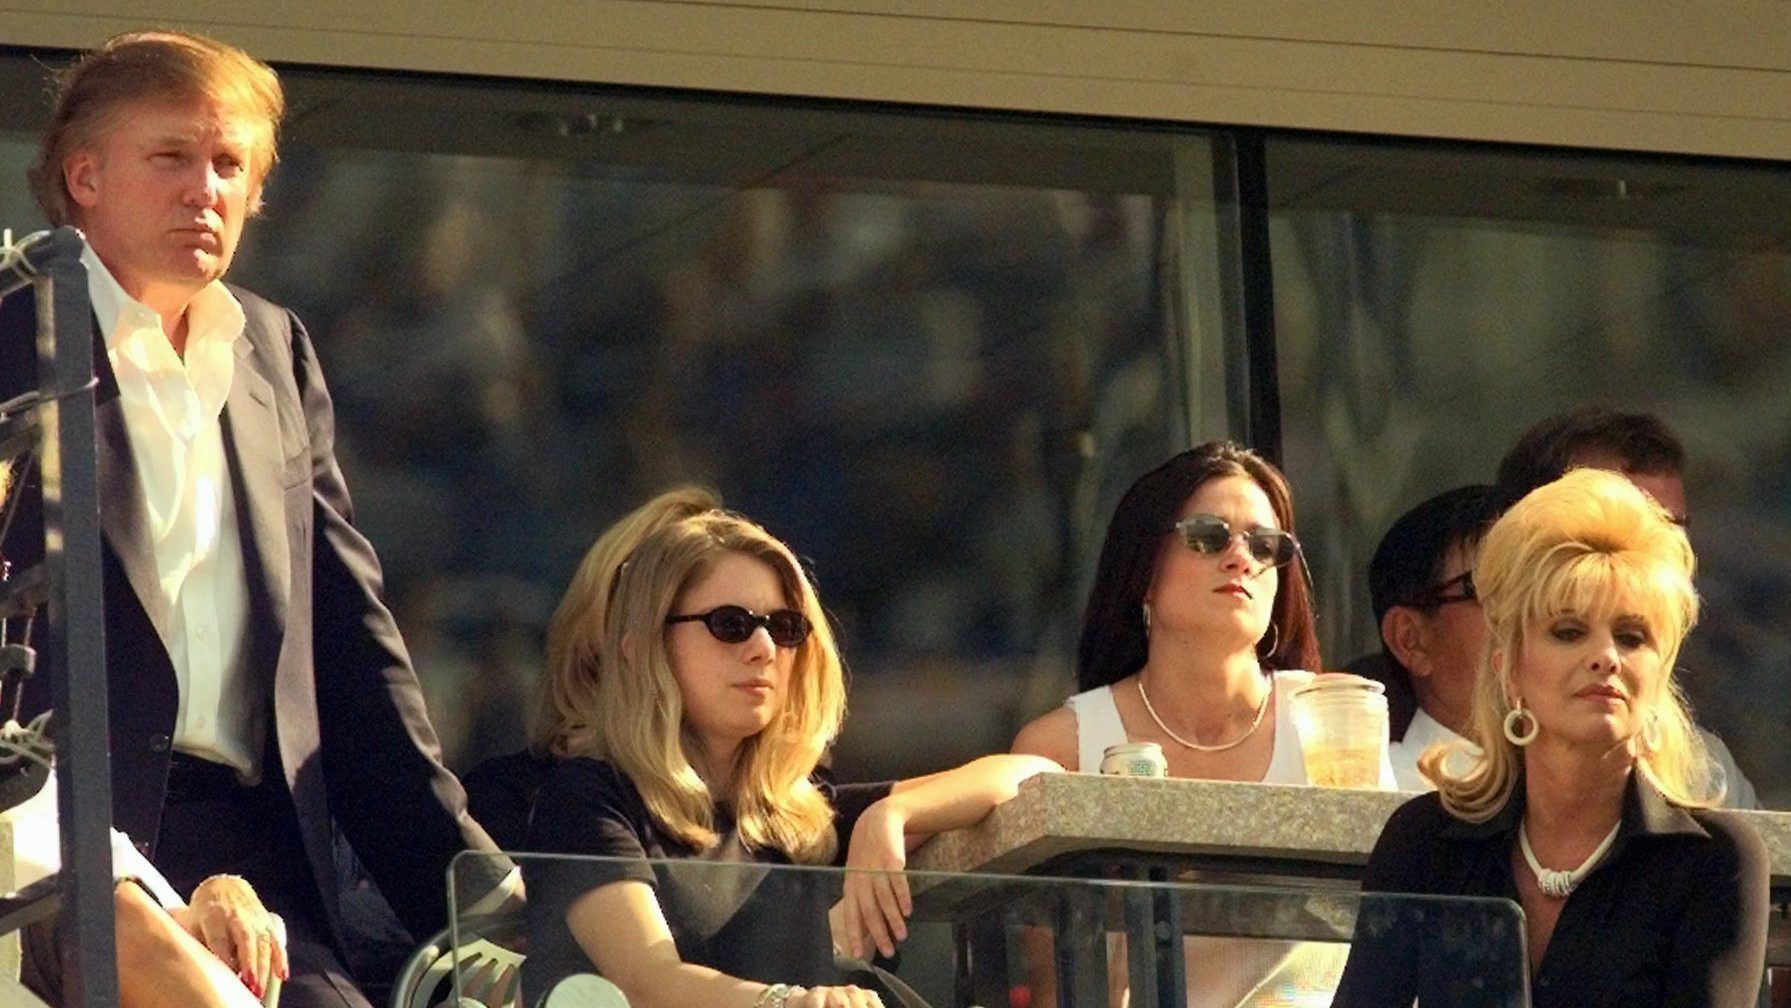 Donald Trump, left, his daughter Ivanka, center, and ex-wife Ivana watch the men's semifinal match from their box at the U.S. Open in New York Saturday, Sept. 6, 1997.   (AP Photo/Richard Drew)